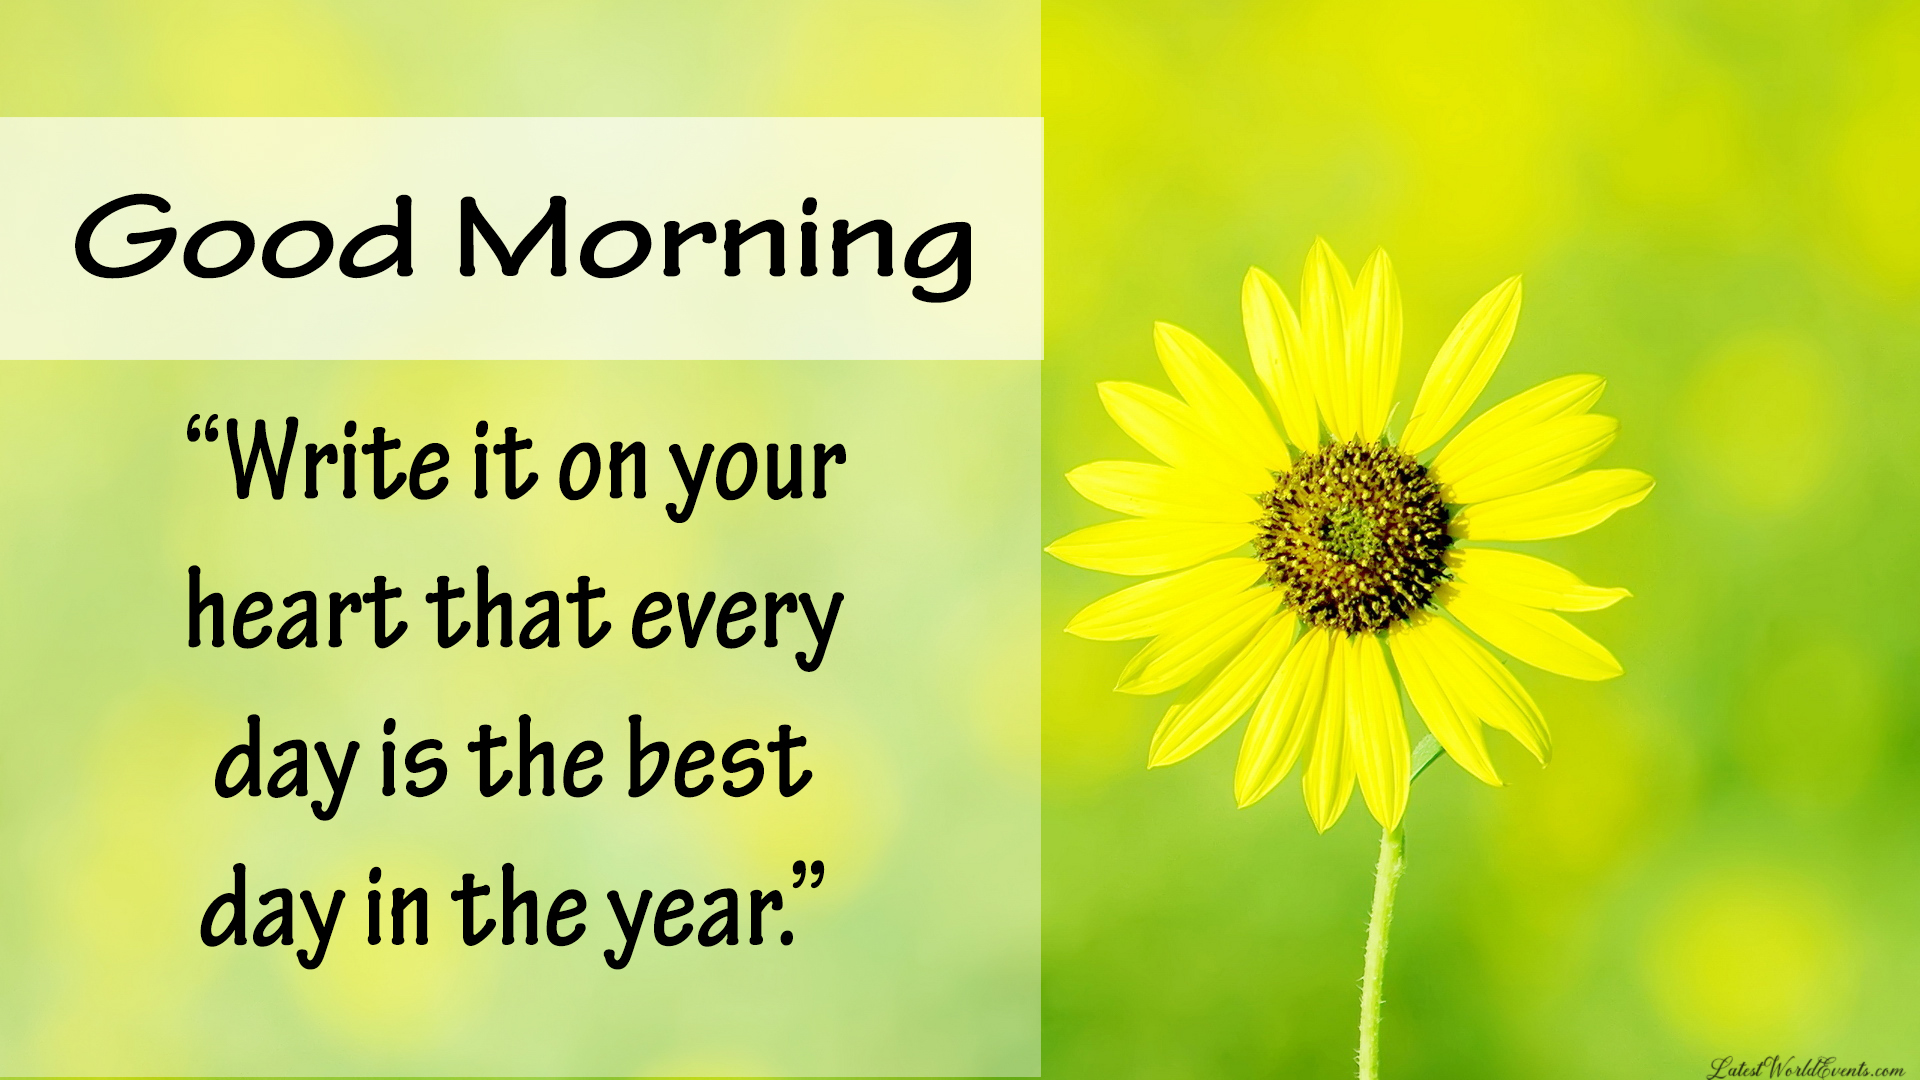 Download-good-morning-my friend-pictures-images-and-photos